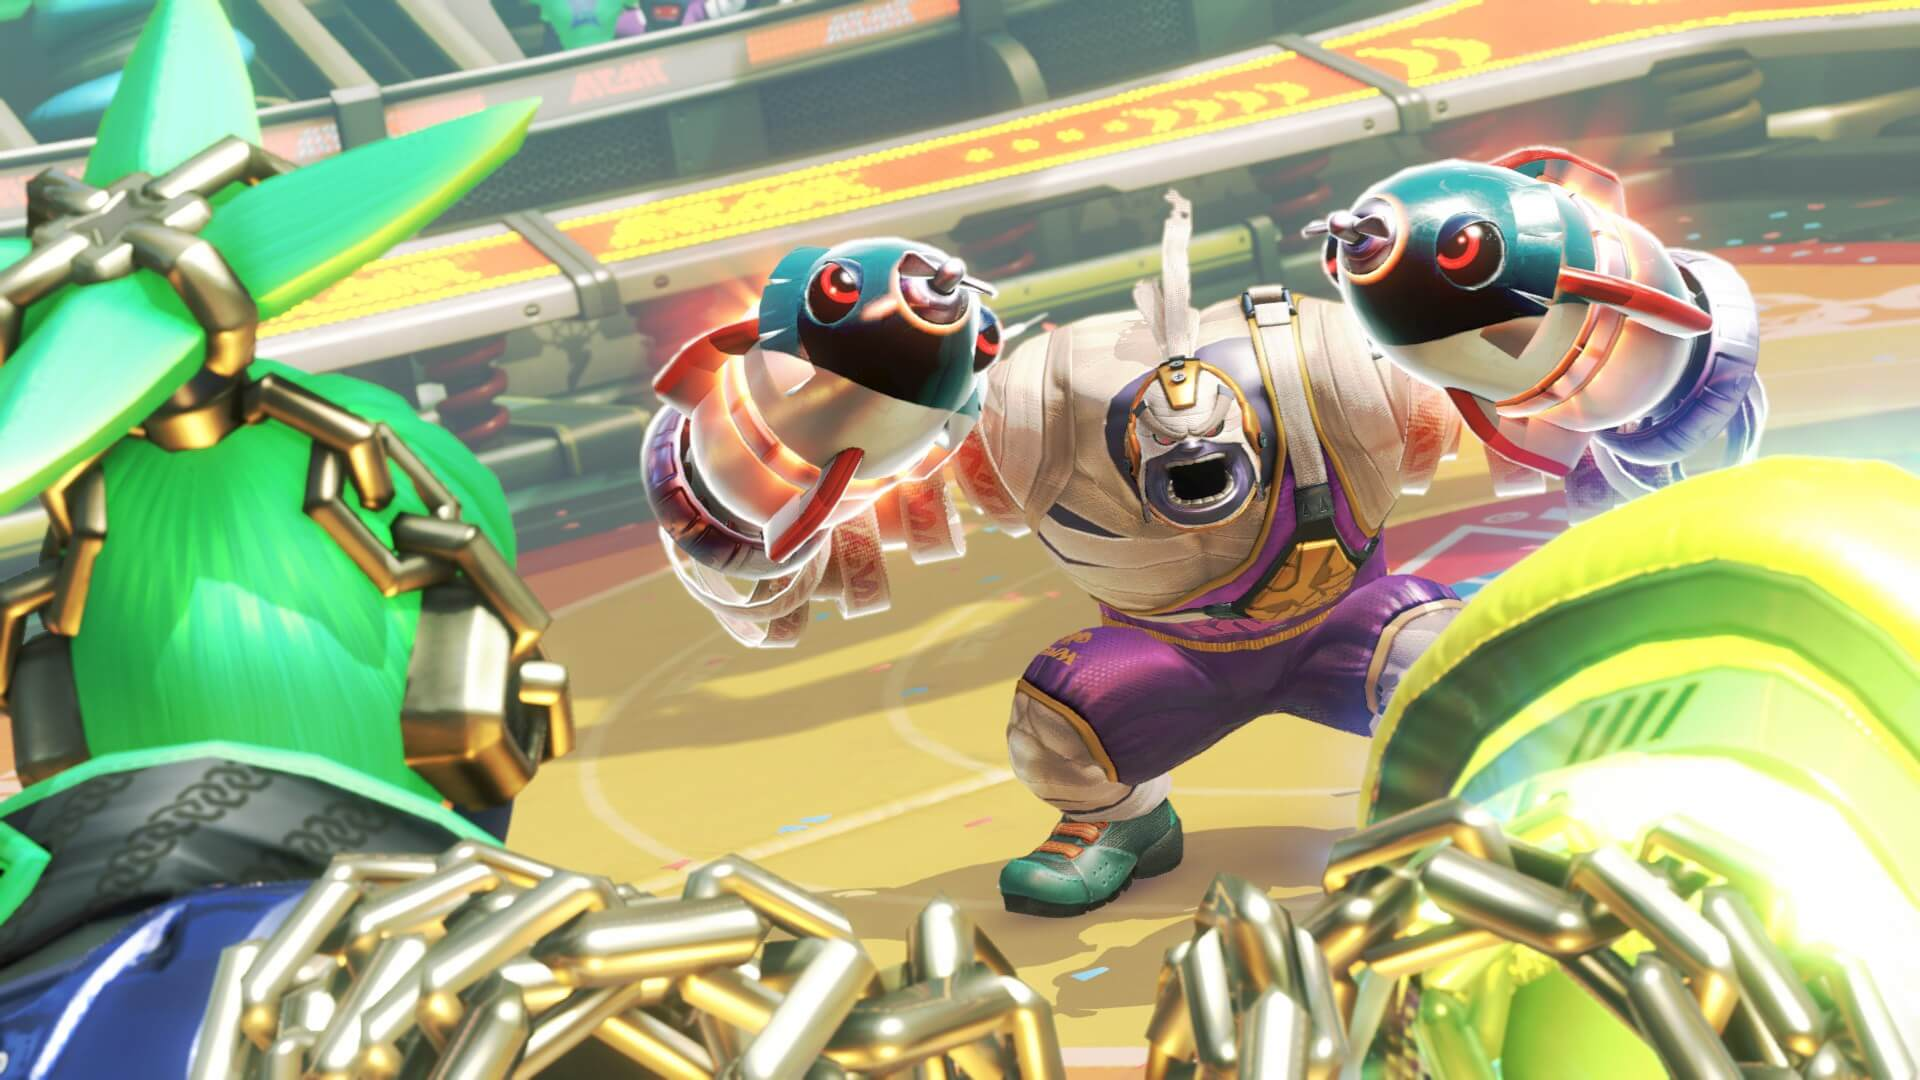 Arms is one of Nintendo's new IPs coming to the Switch.